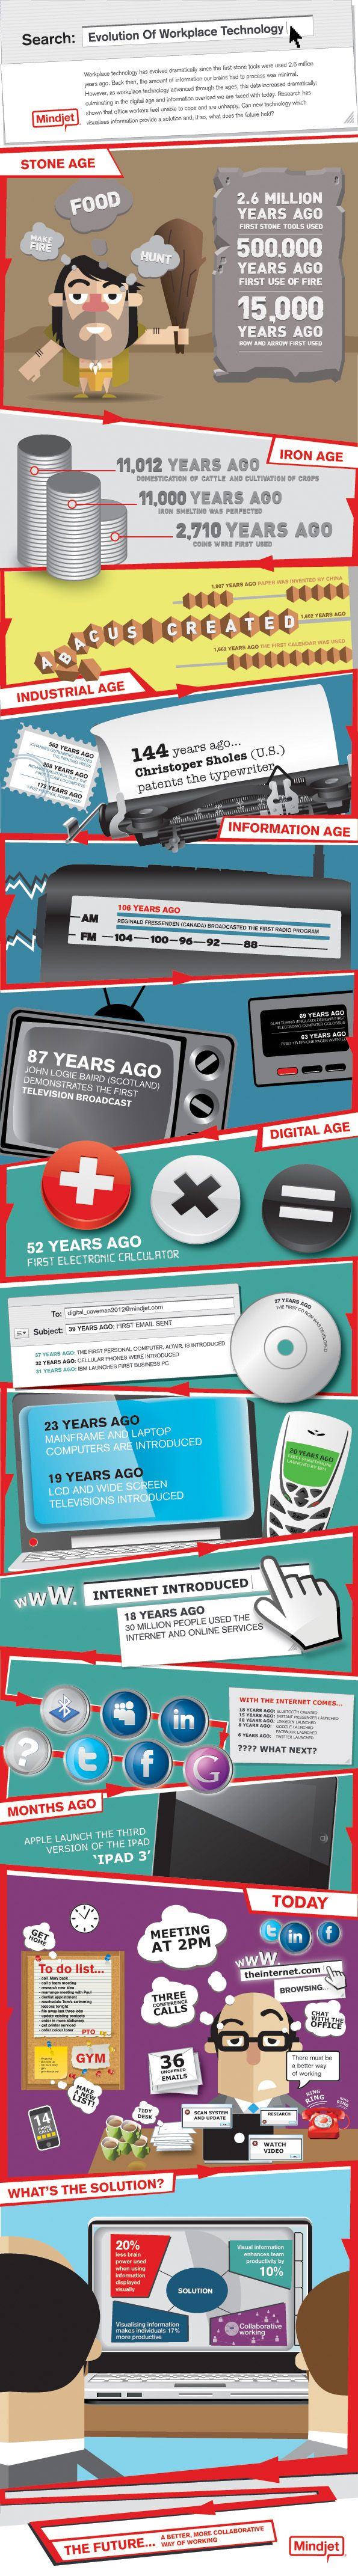 Evolution of Workplace Technology...